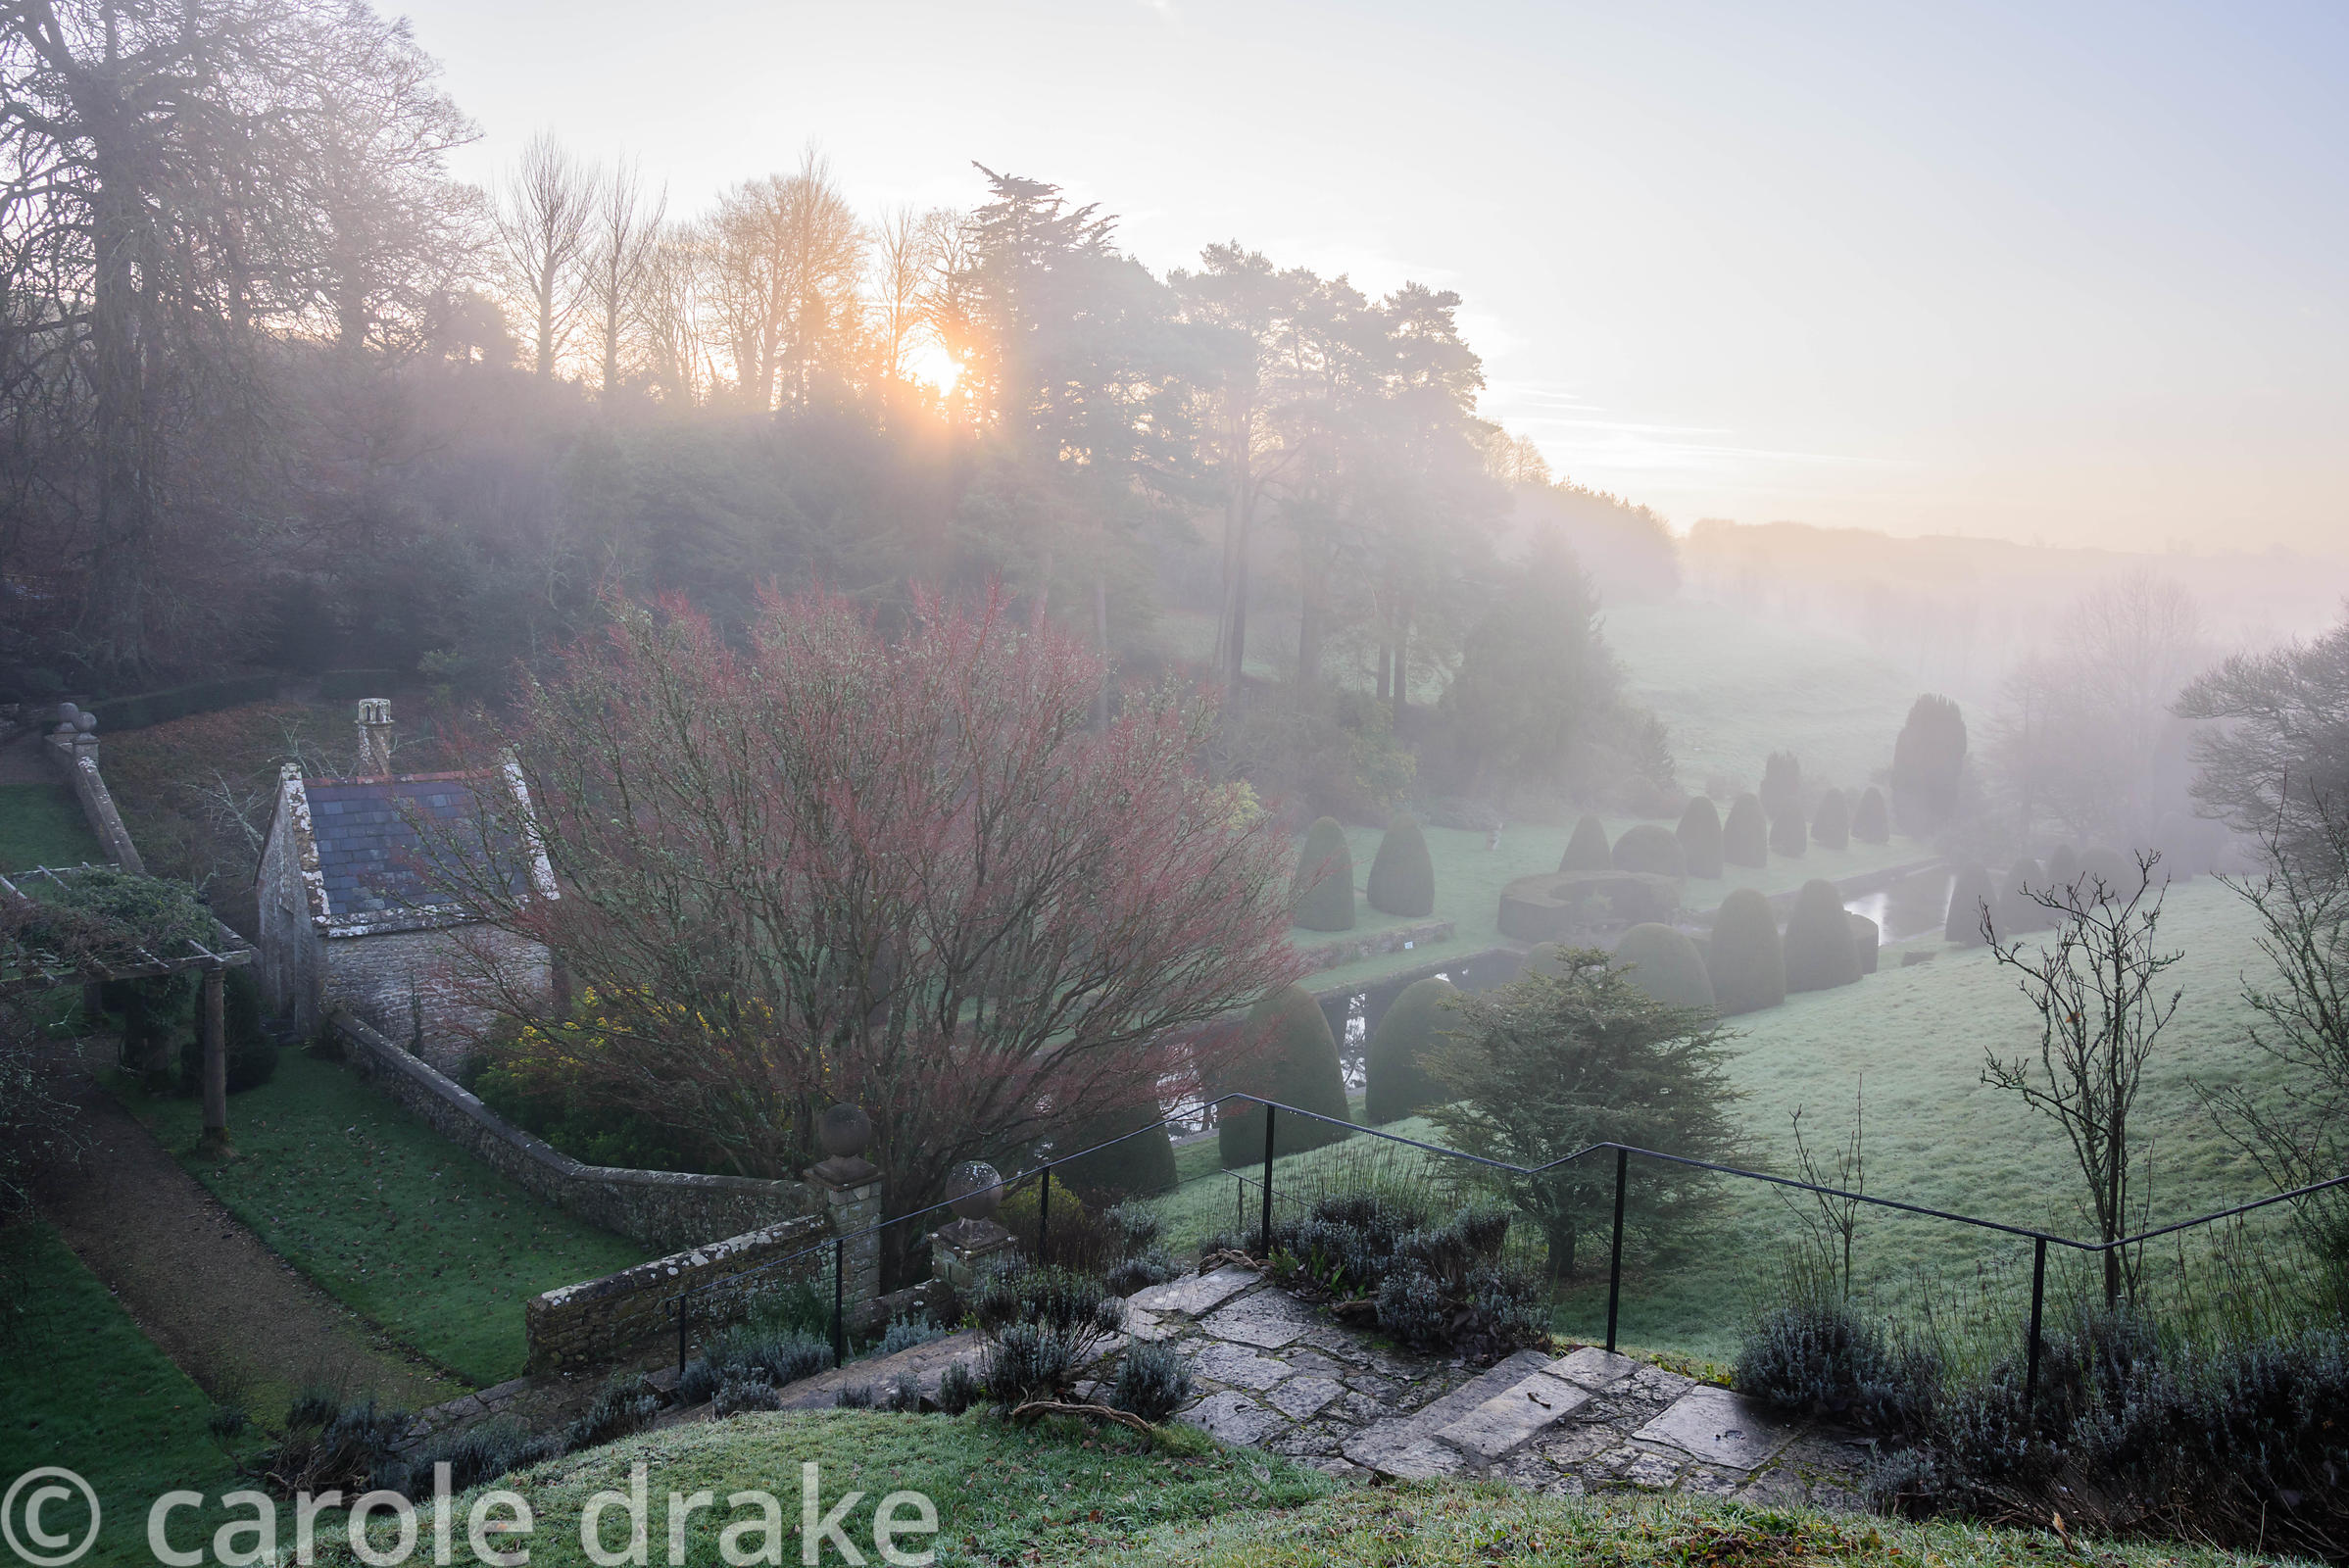 View across the Canal Garden on a winter's morning at Mapperton, Dorset where clipped yews frame a swimming pool and a lily pond